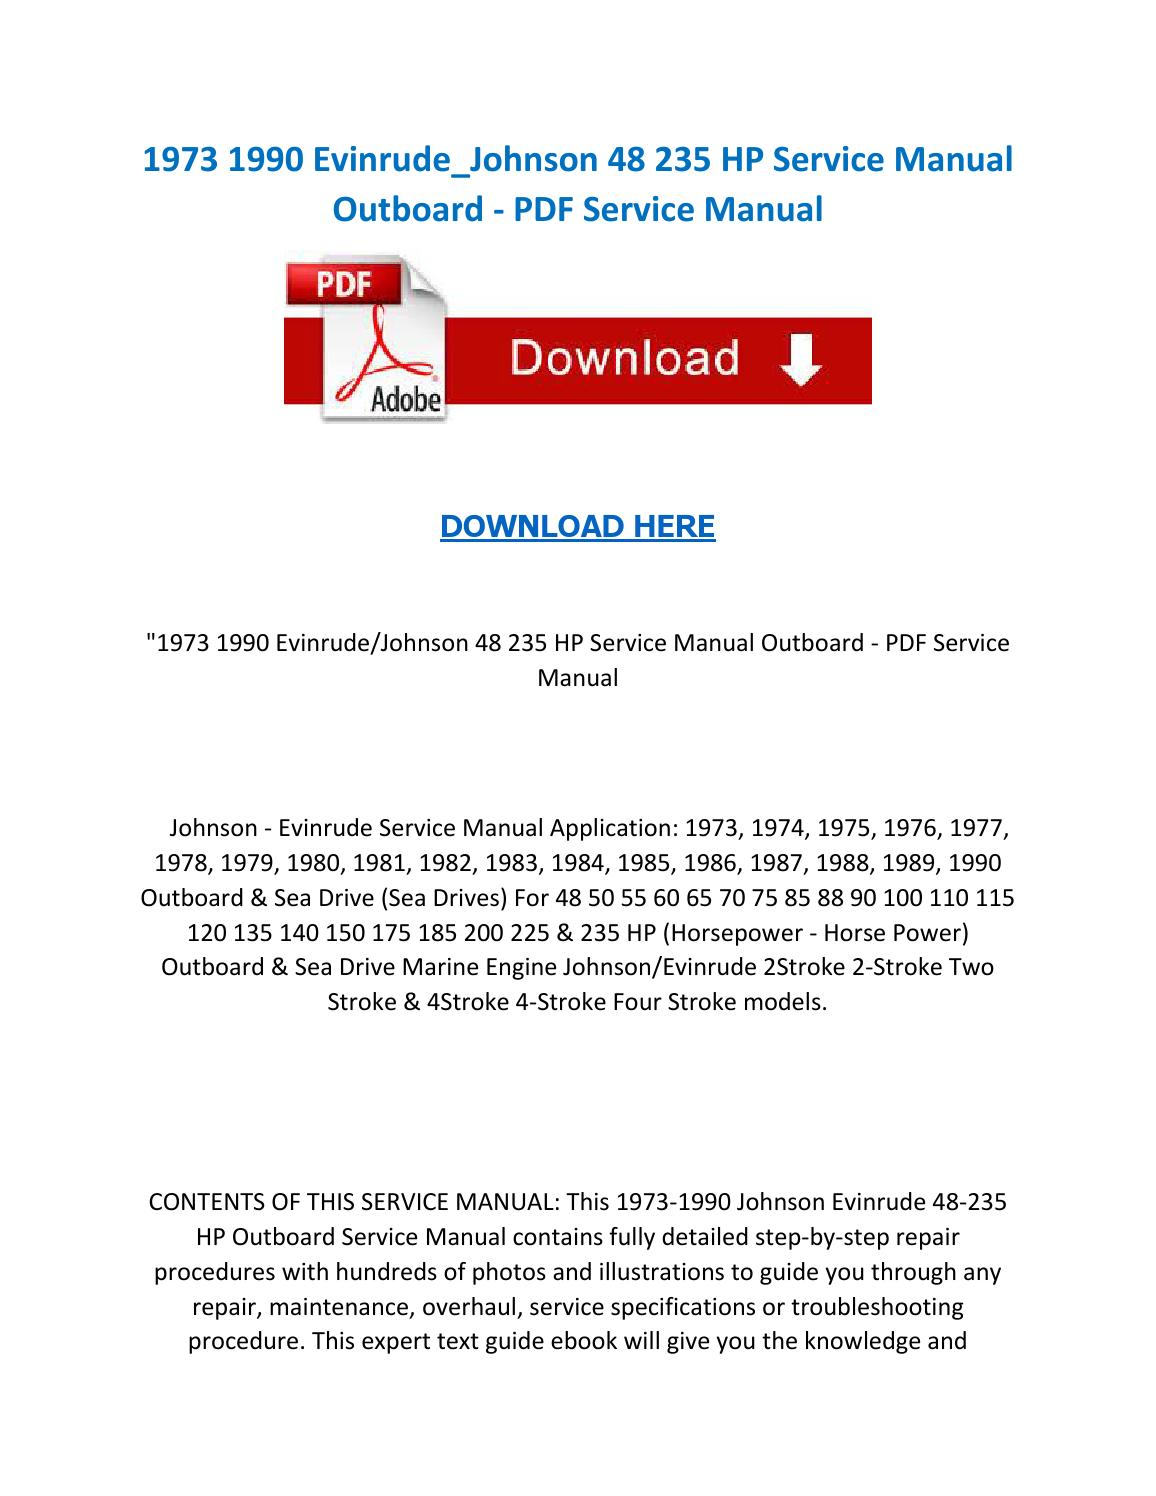 1973 1990 evinrude johnson 48 235 hp service manual outboard pdf service  manual by ServiceManuals - issuu